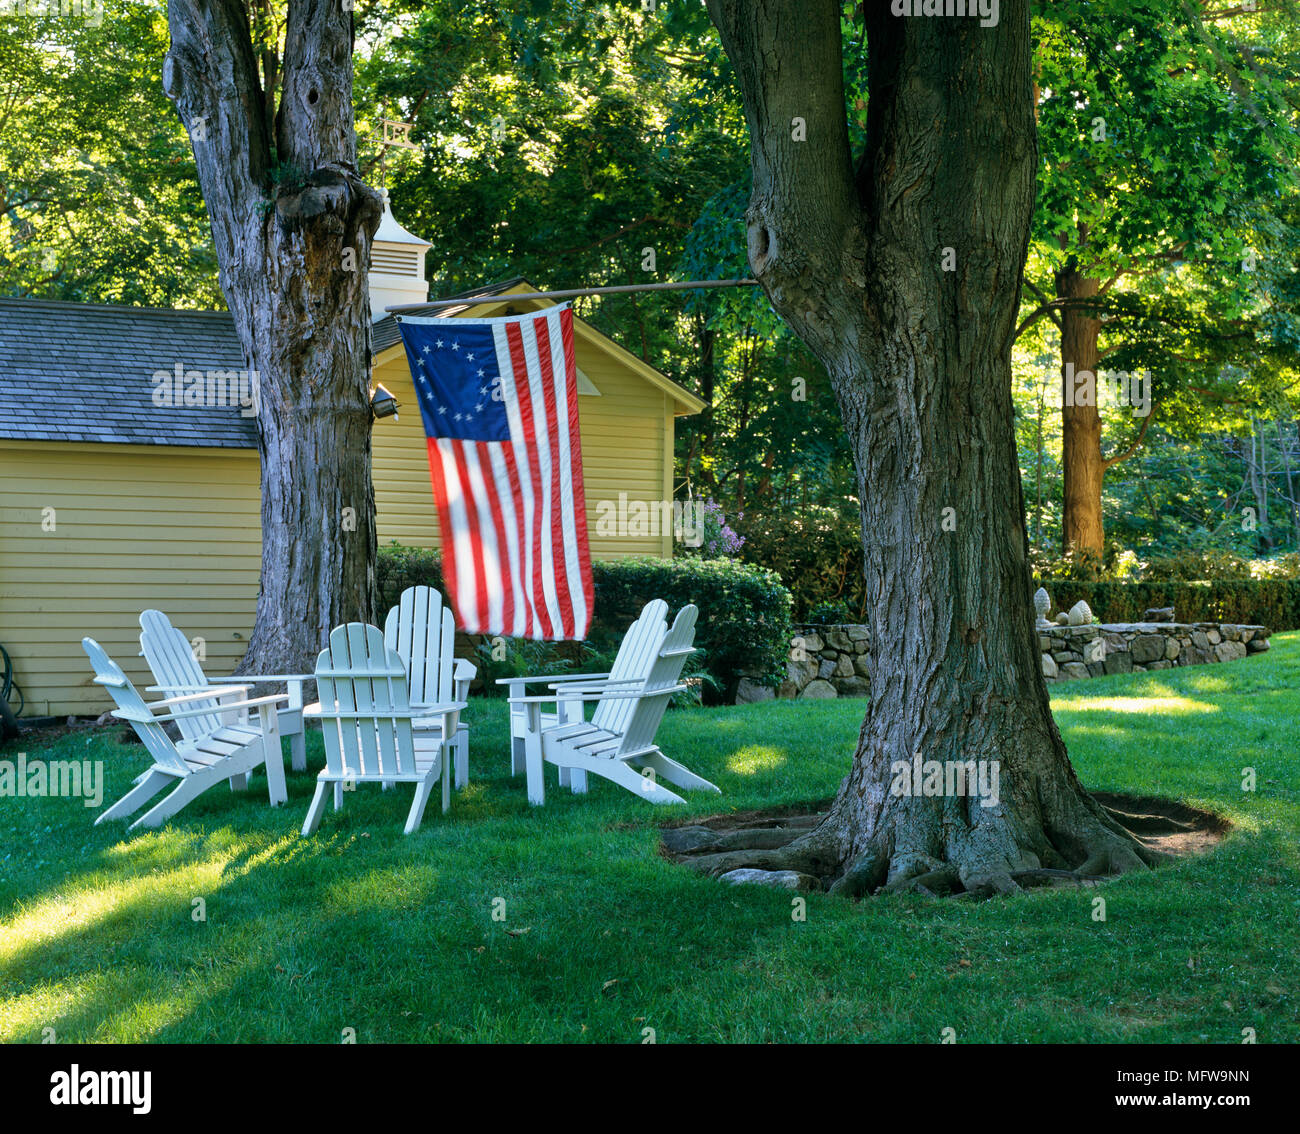 Adirondack chairs in garden amongst trees with American flag - Stock Image